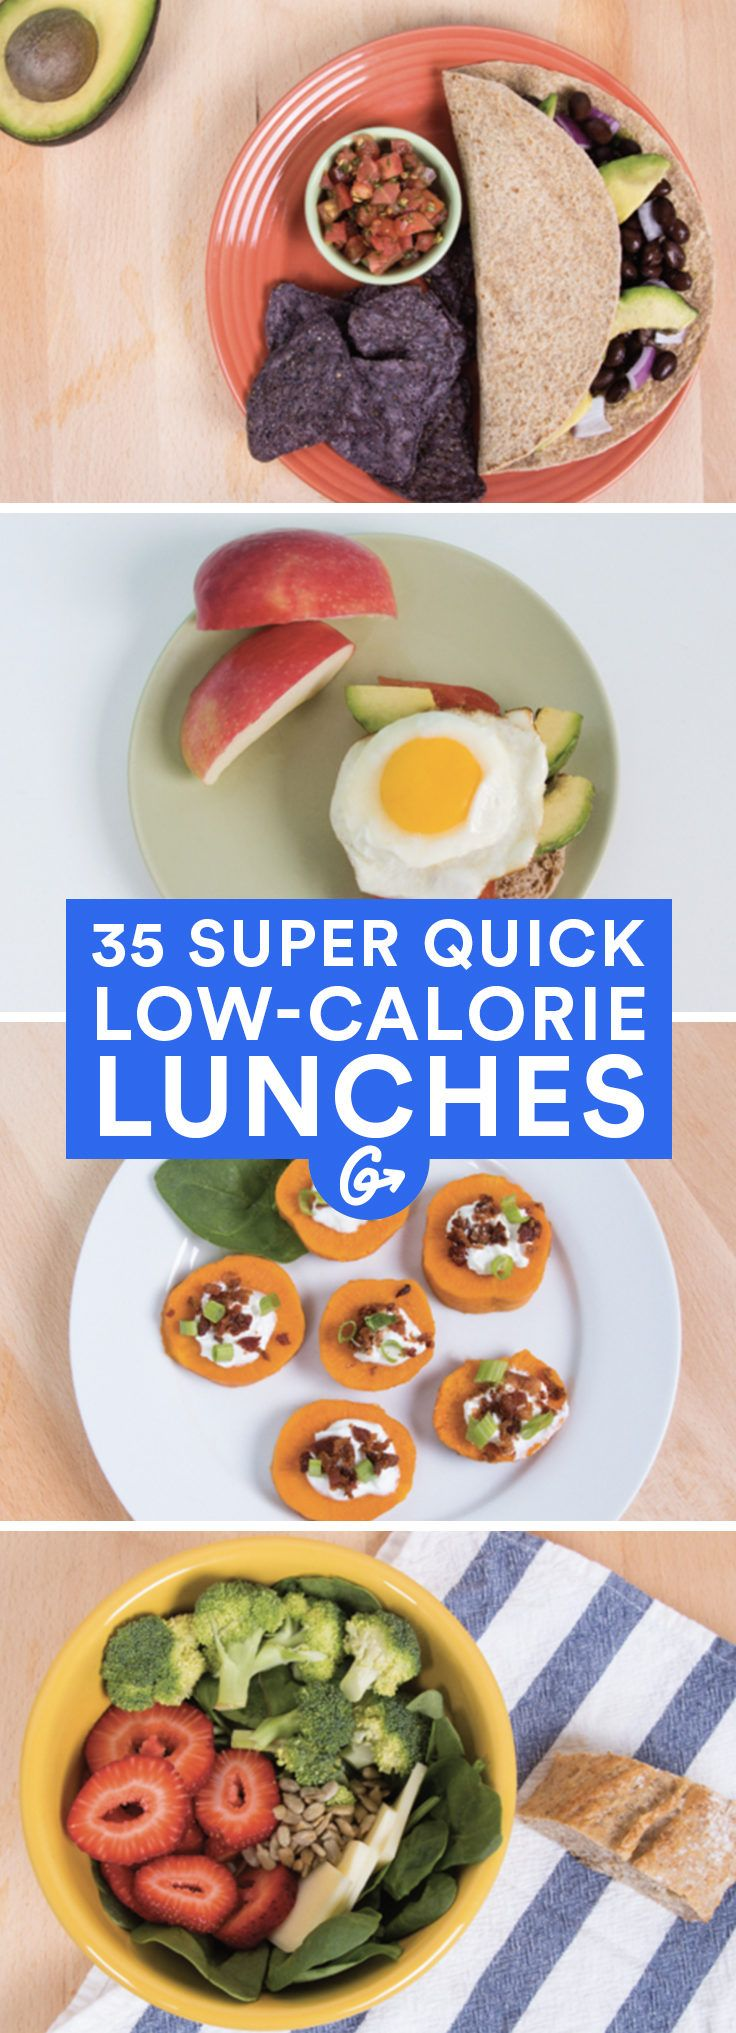 It's time to kick that brown-bag lunch up a notch! With a little planning, these lunches can be prepared in seven minutes or less.  #healthy #lowcalorie #lunches http://greatist.com/health/35-quick-and-healthy-low-calorie-lunches